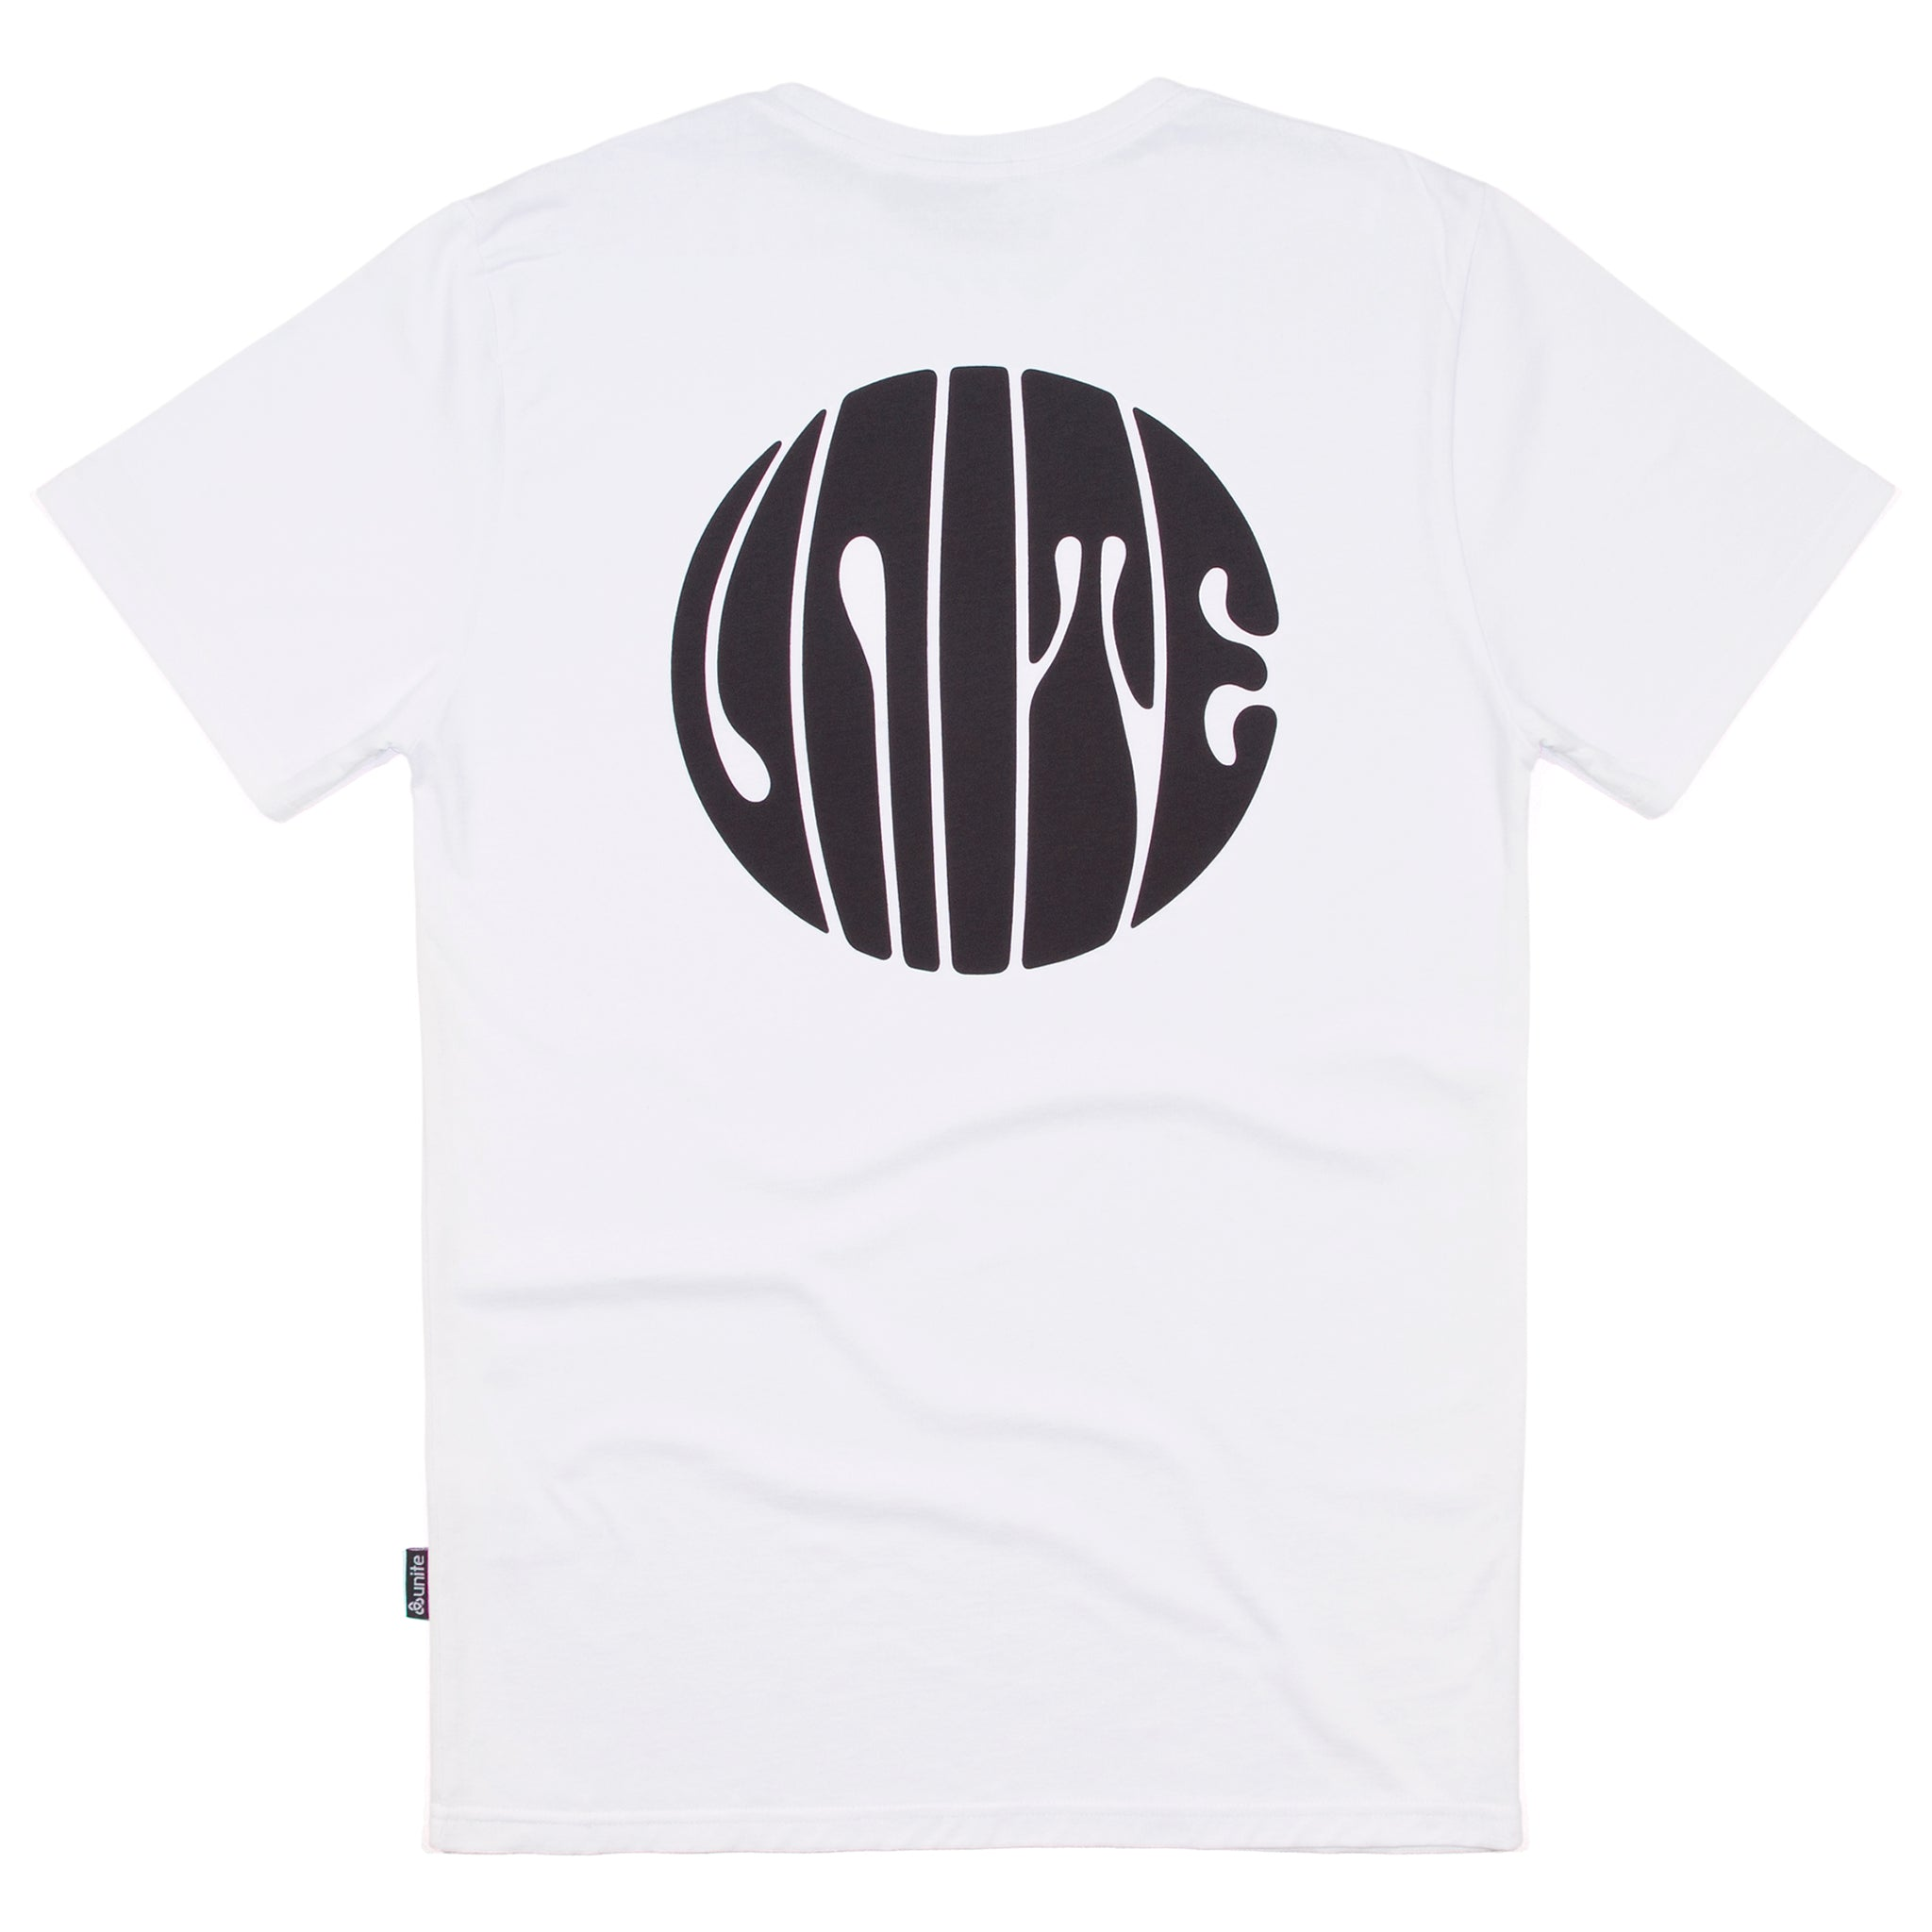 Fisheye Tee Shirt